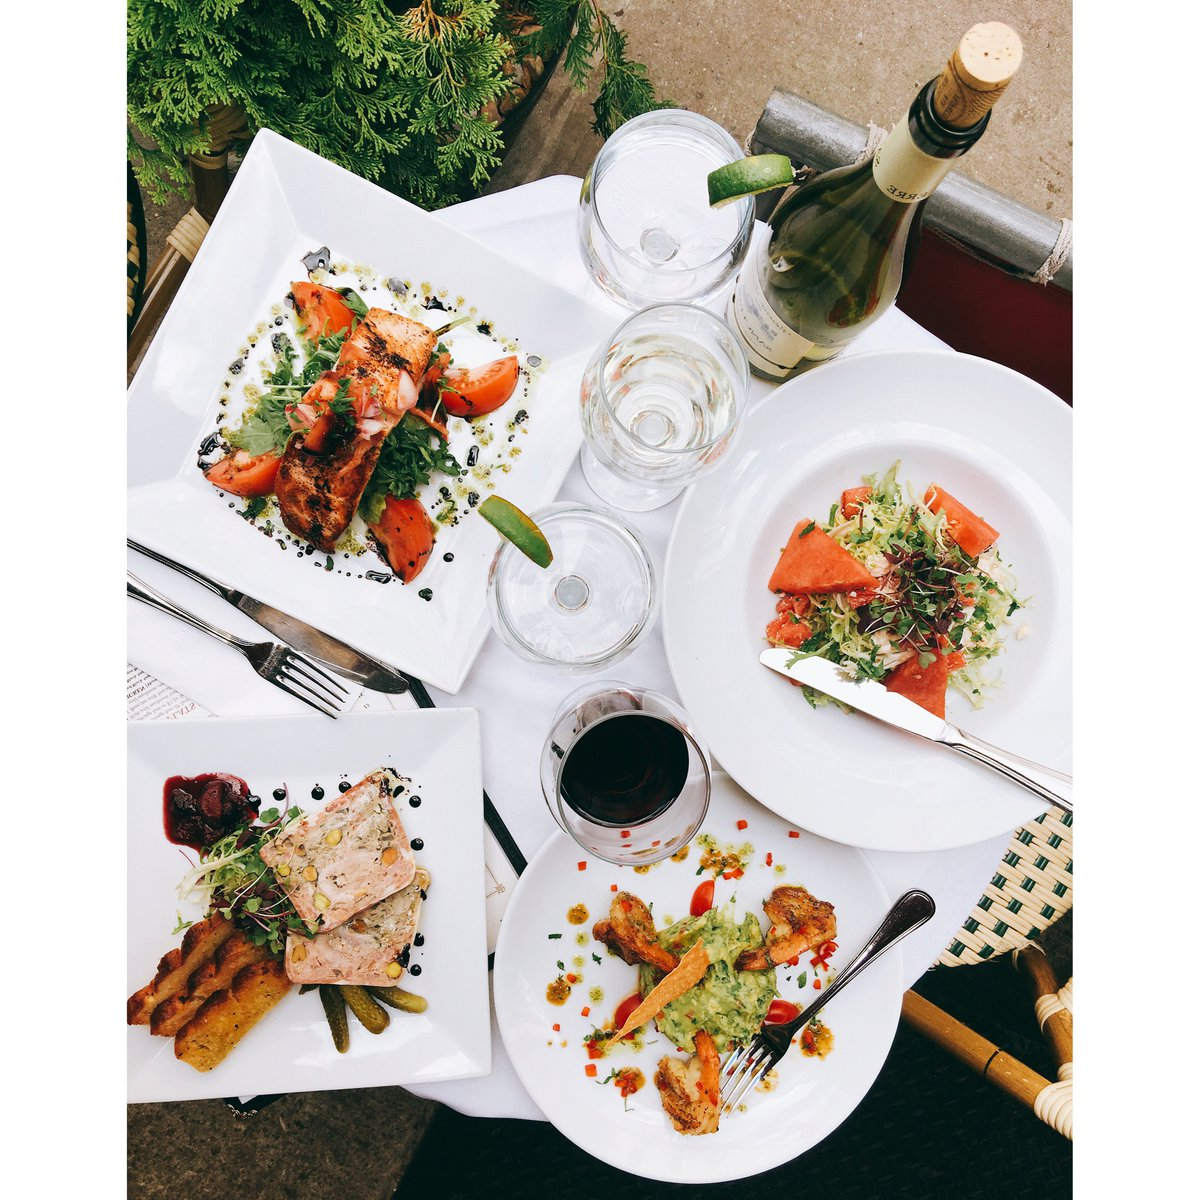 How can Monday get you down when it&#39;s 85 and sunny? Stop at Jacques for dinner al fresco. #jacques #uptown #food #dinner #fall #summer<br>http://pic.twitter.com/dRWc6aNCHN